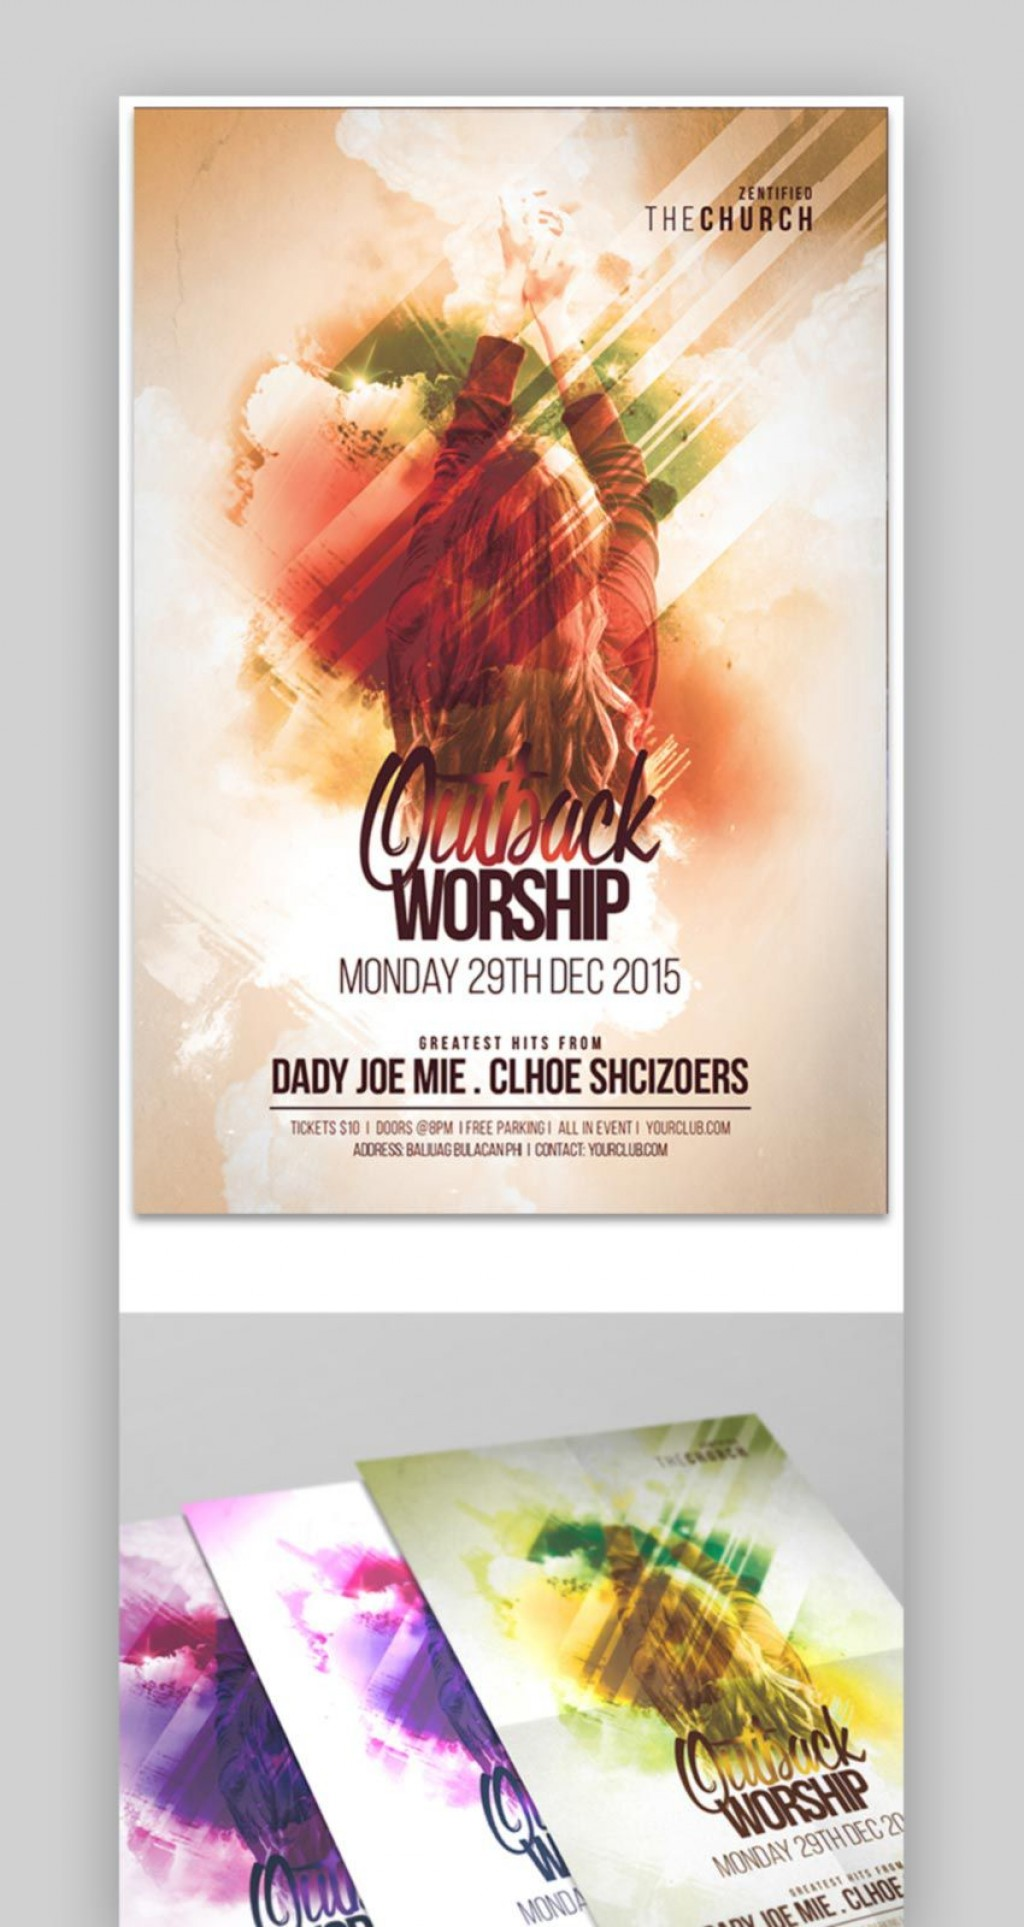 009 Surprising Church Flyer Template Free Download Highest Quality  Event PsdLarge